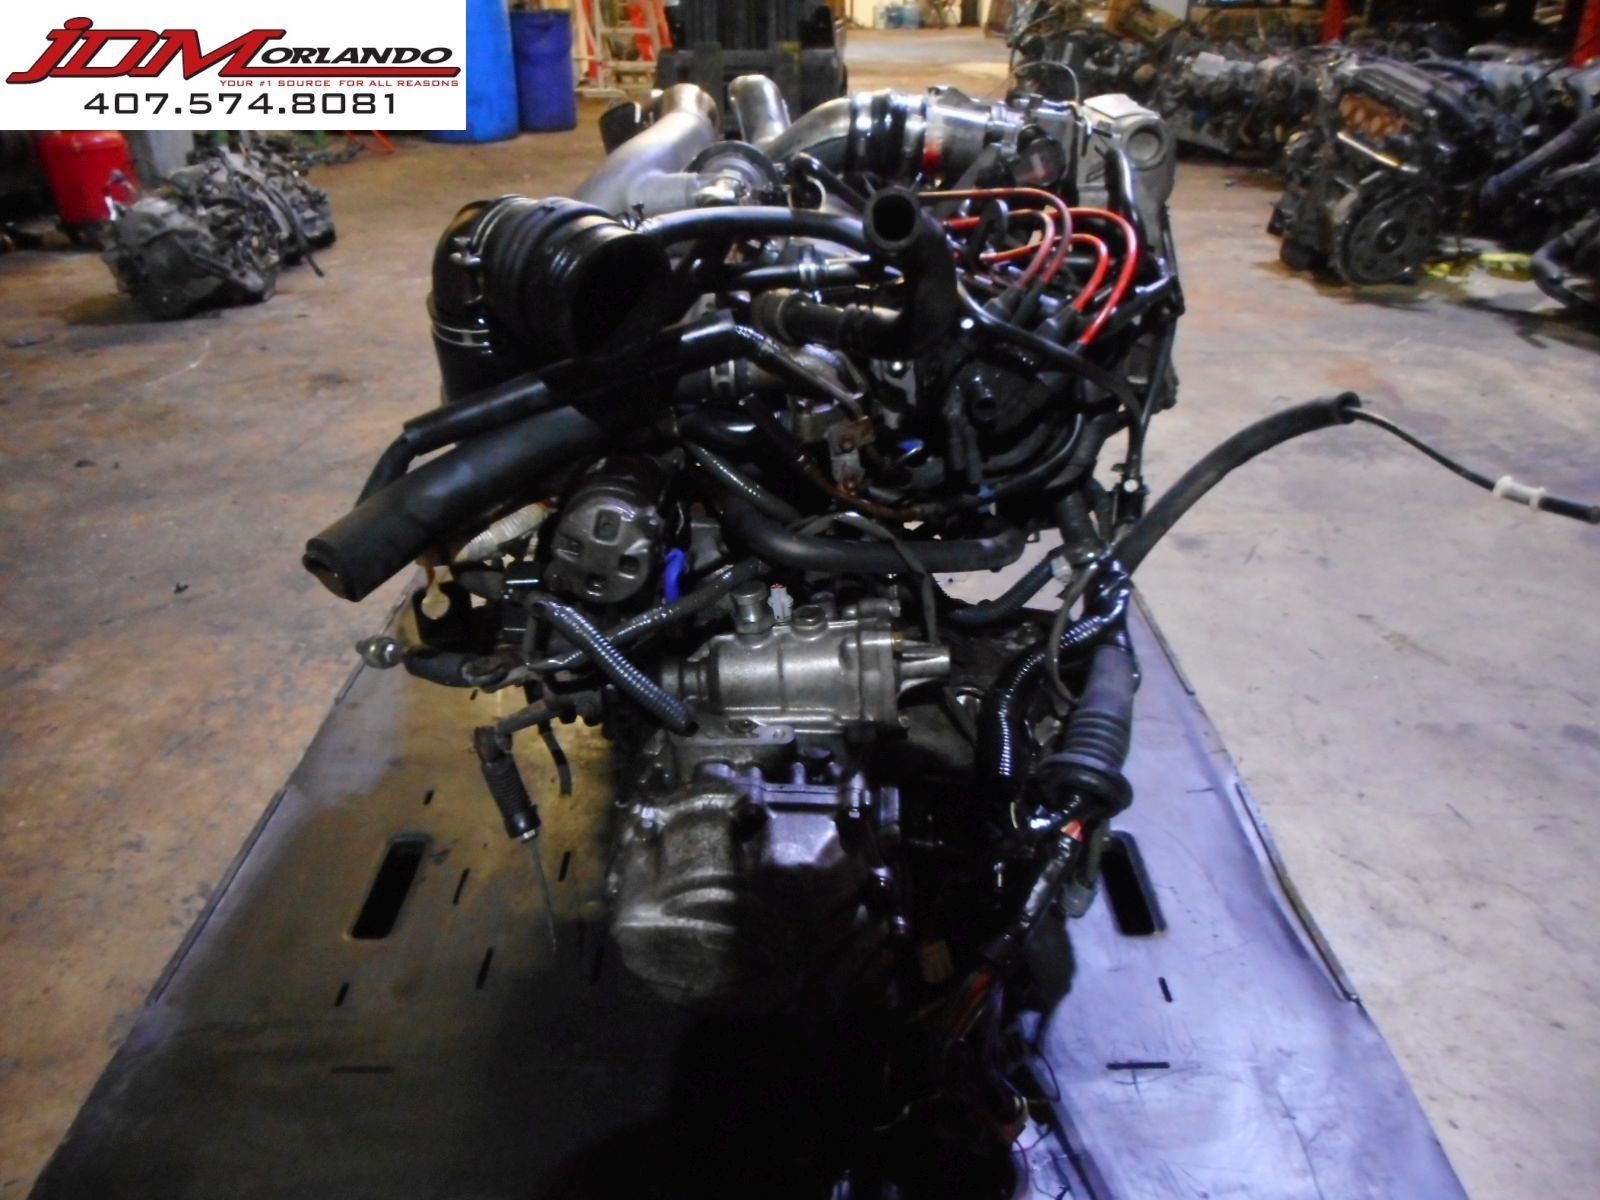 91-93 Toyota Mr2 2 0l Twin Cam Turbo Engine & Manual Transmission JDM 3S-GTE